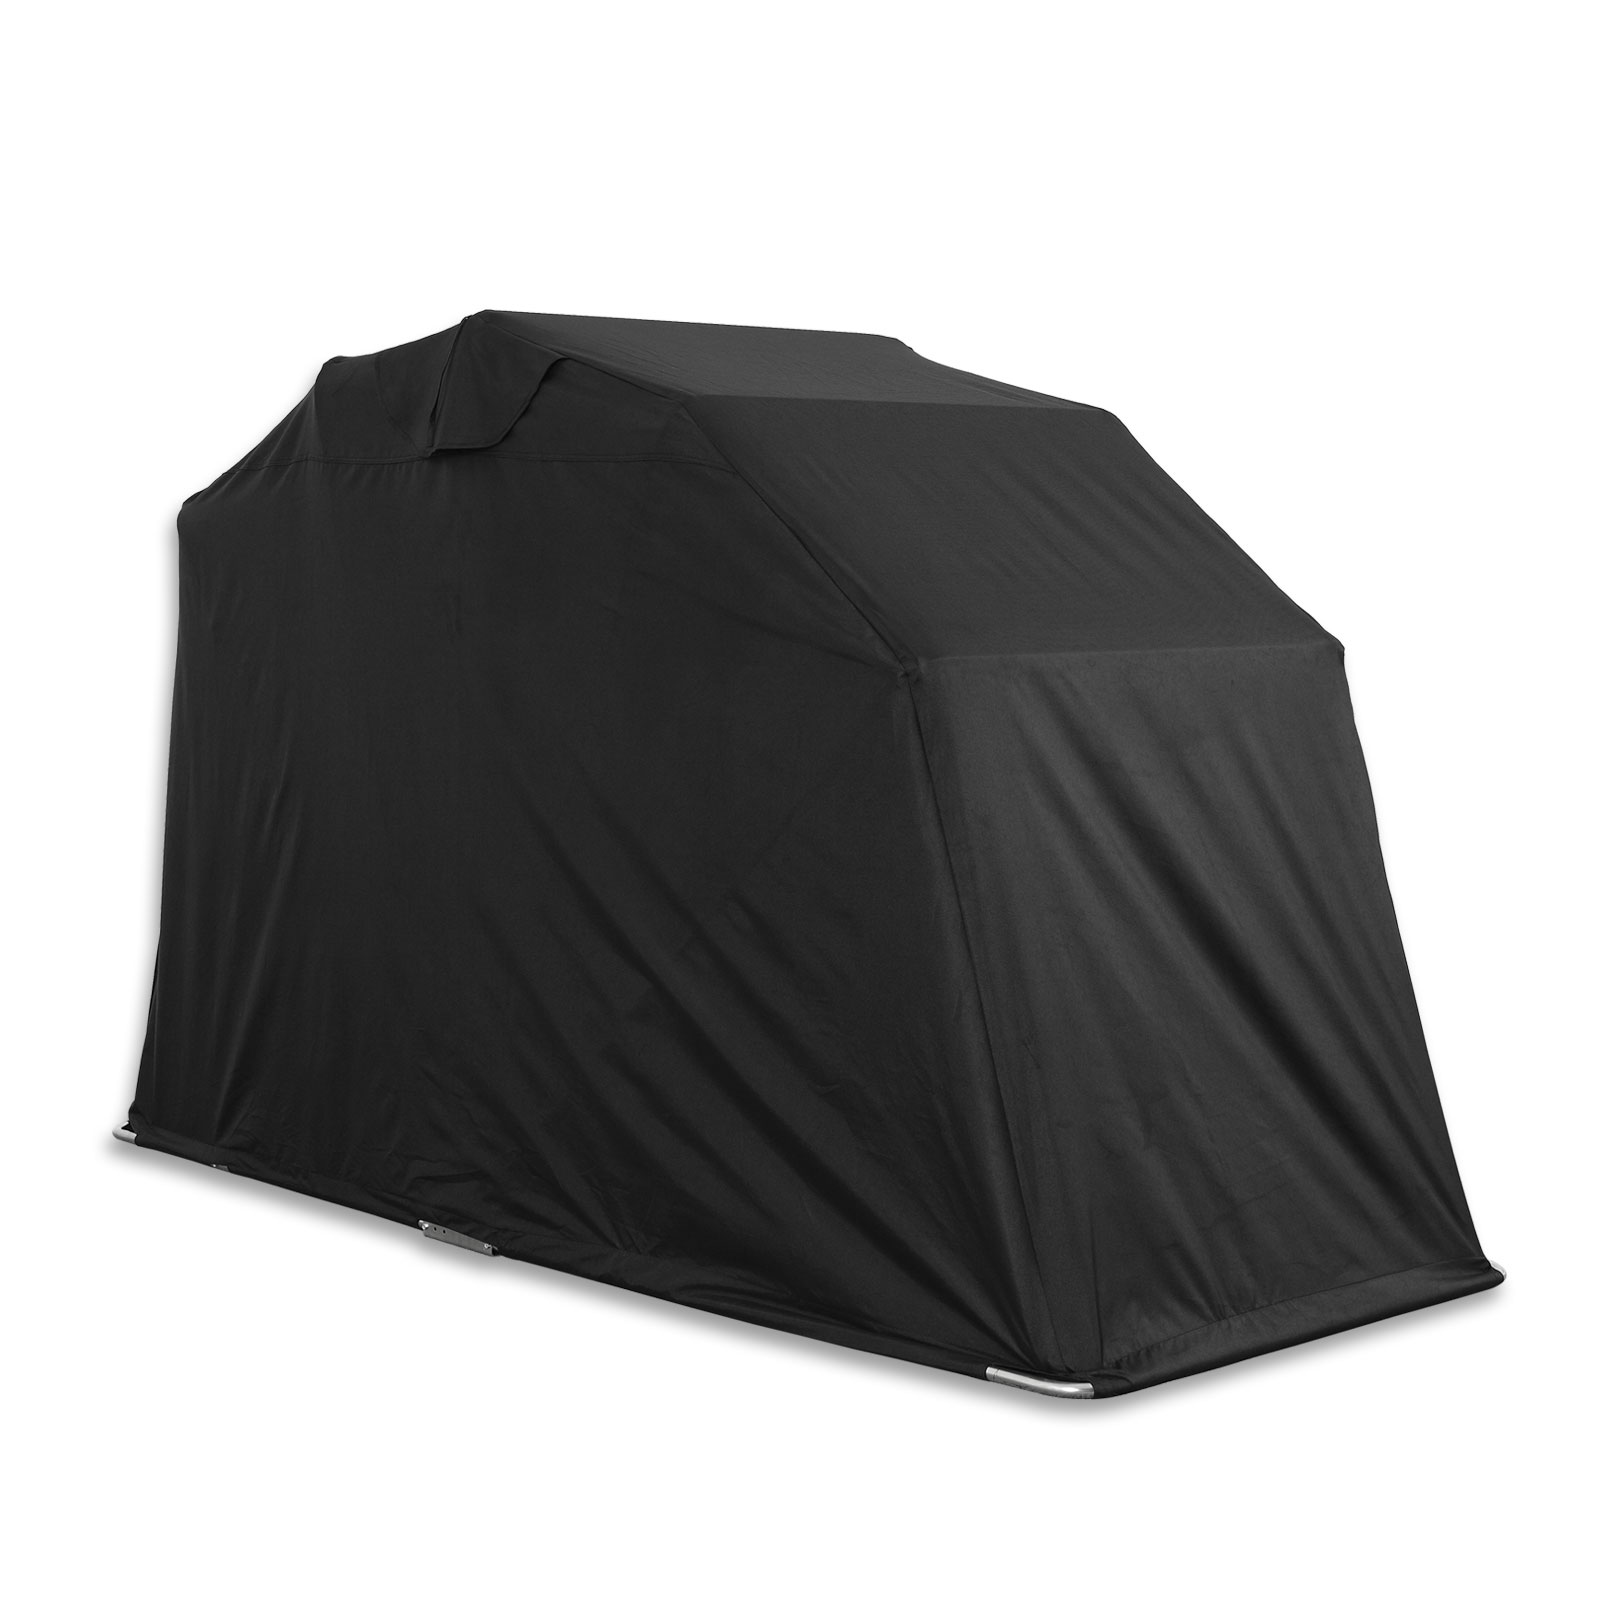 Motorcycle Sheds And Covers : Motorcycle bike tent shed outdoor cover folding garage